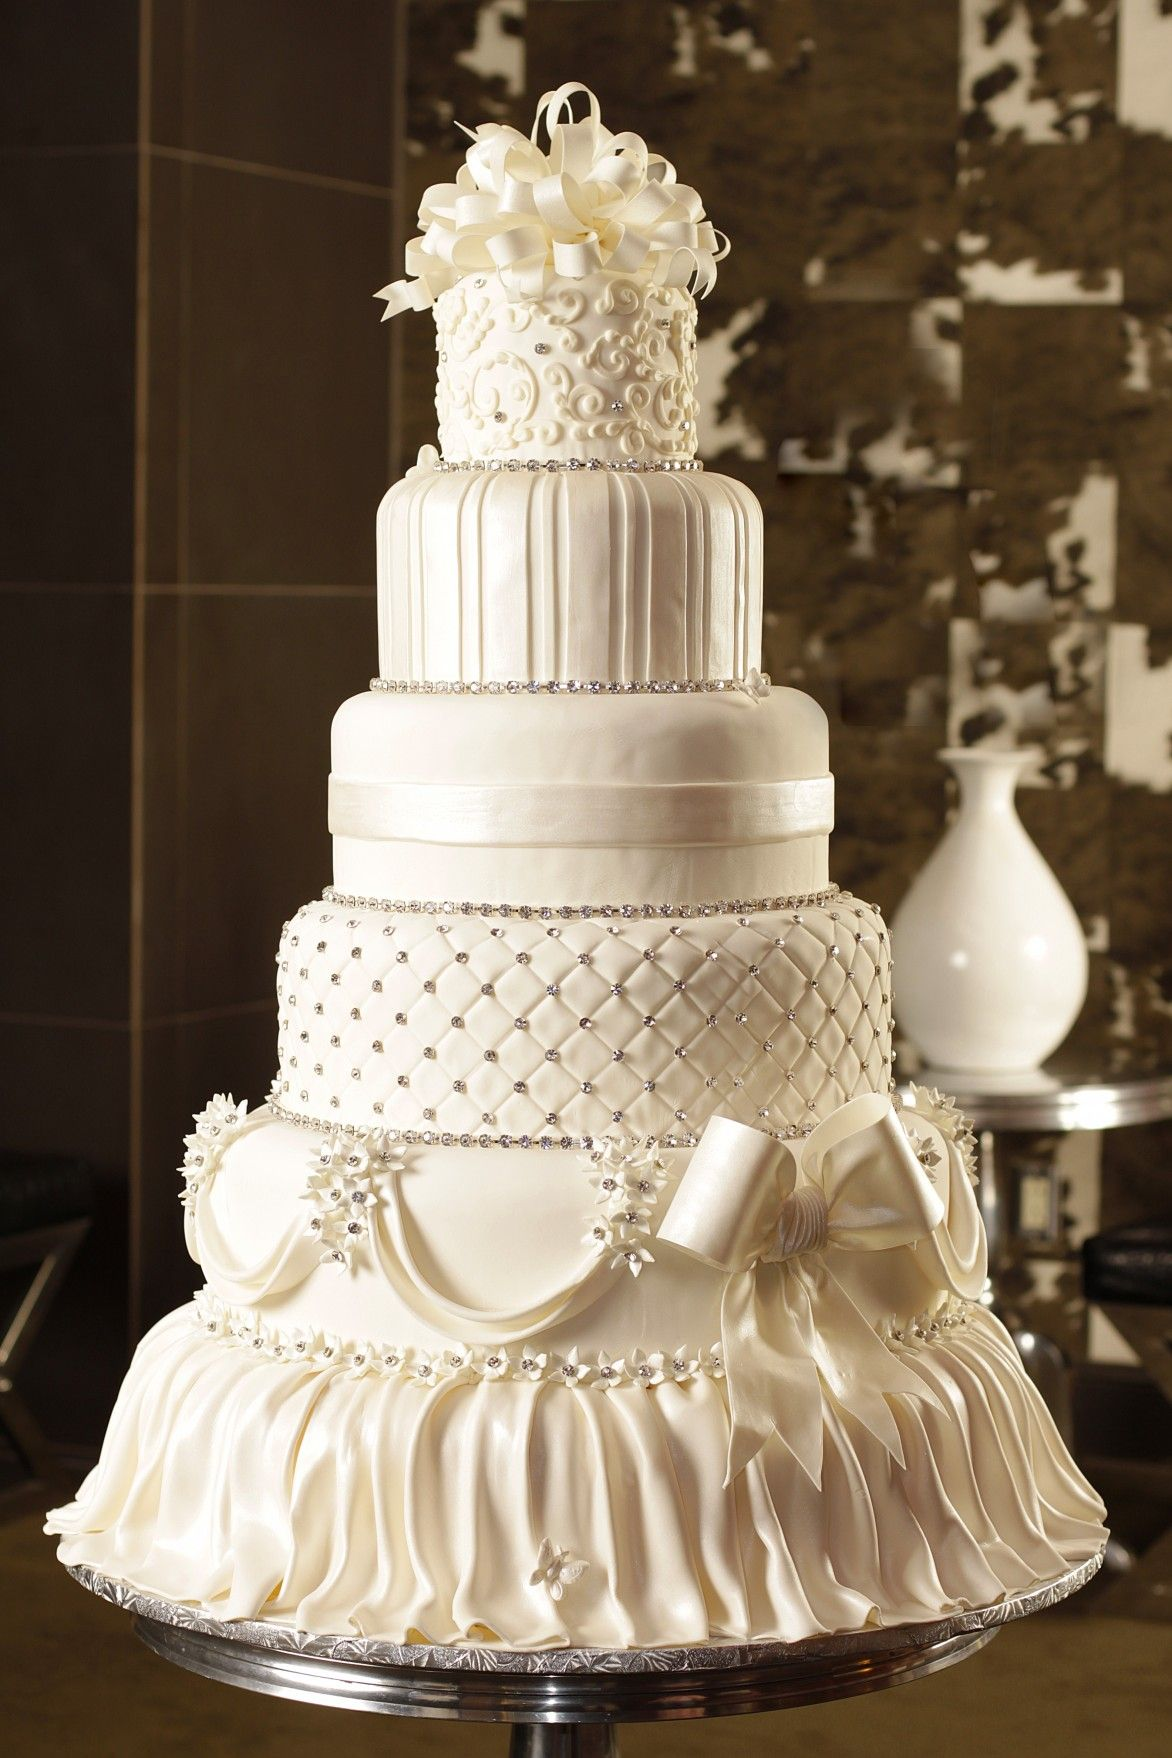 Pin By Vernita Basdeo On Cakes Cake Boss Wedding Victorian Wedding Cakes Cake